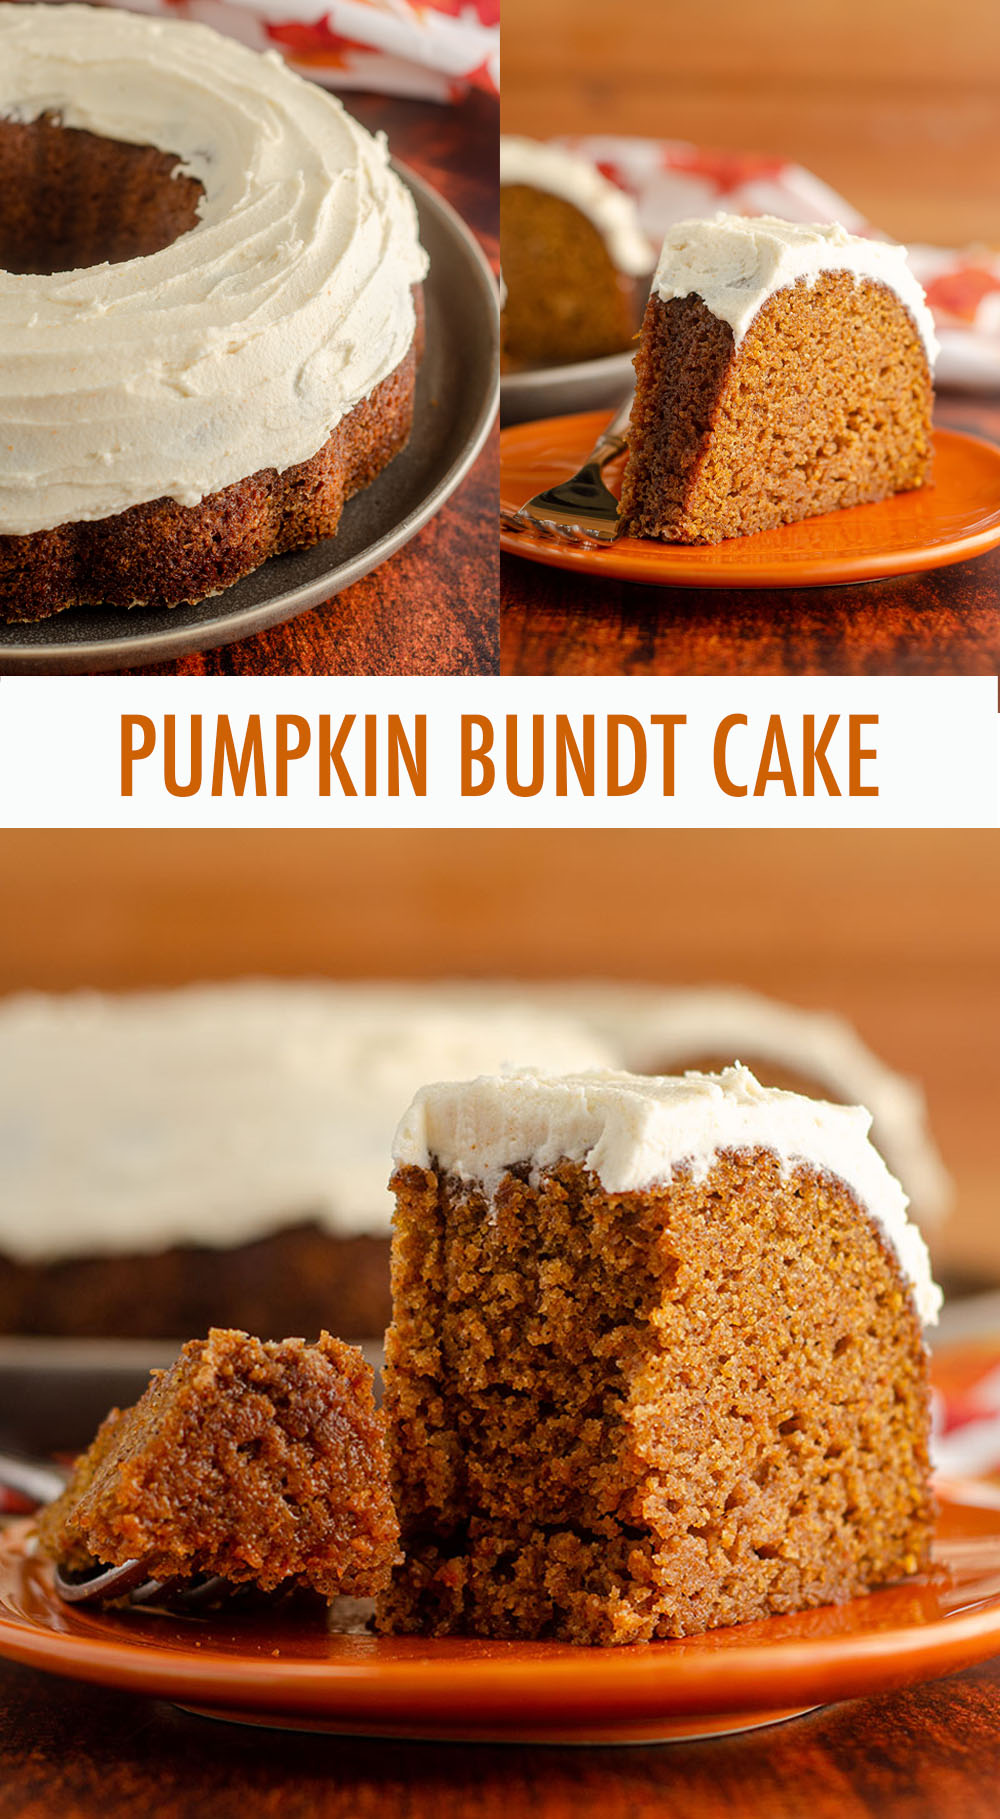 Moist, spiced bundt cake made with real pumpkin and covered in a decadent brown butter buttercream.